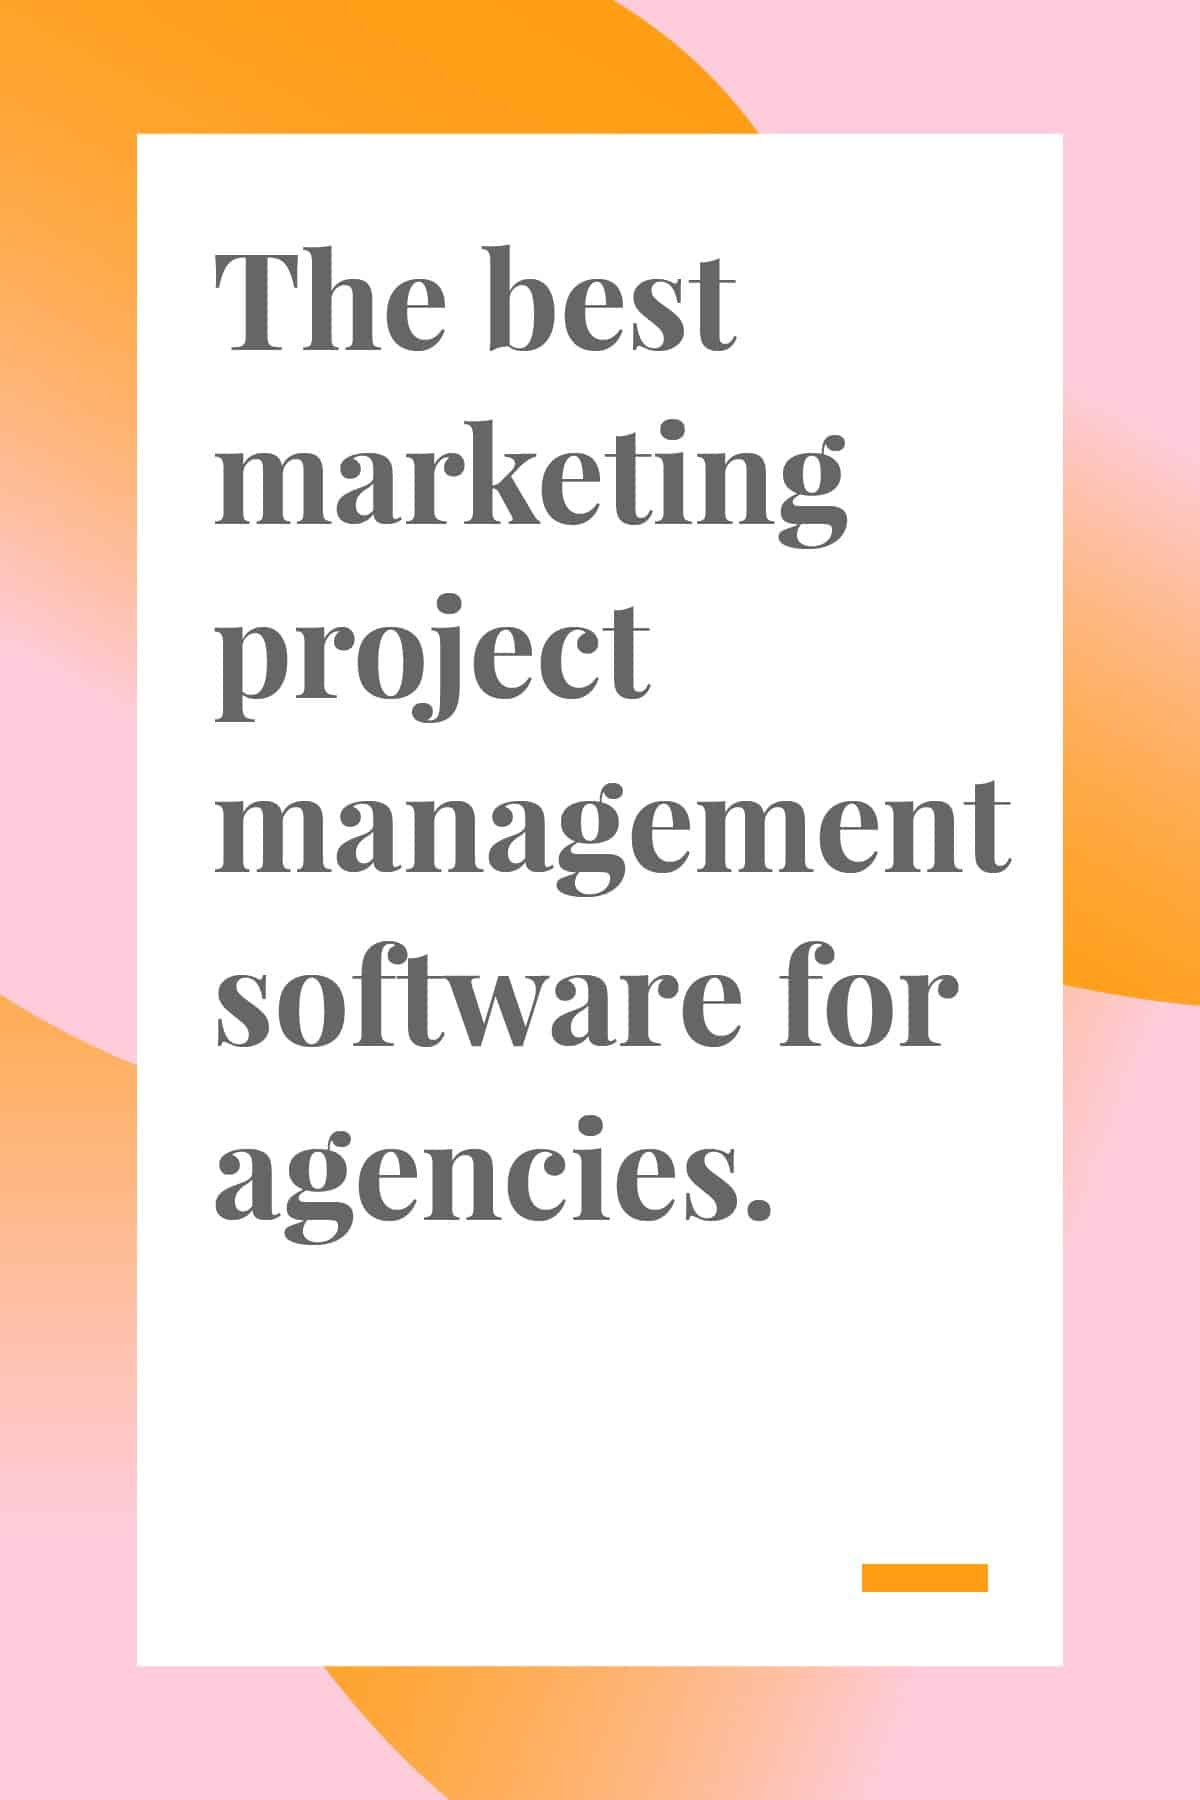 It's crucial to a marketing team's success to find a project management program that will cater specifically to their creative needs. That's why we put together this list of twelve marketing project management software options to help you find the perfect fit for your agency. #projectmanagement #marketing